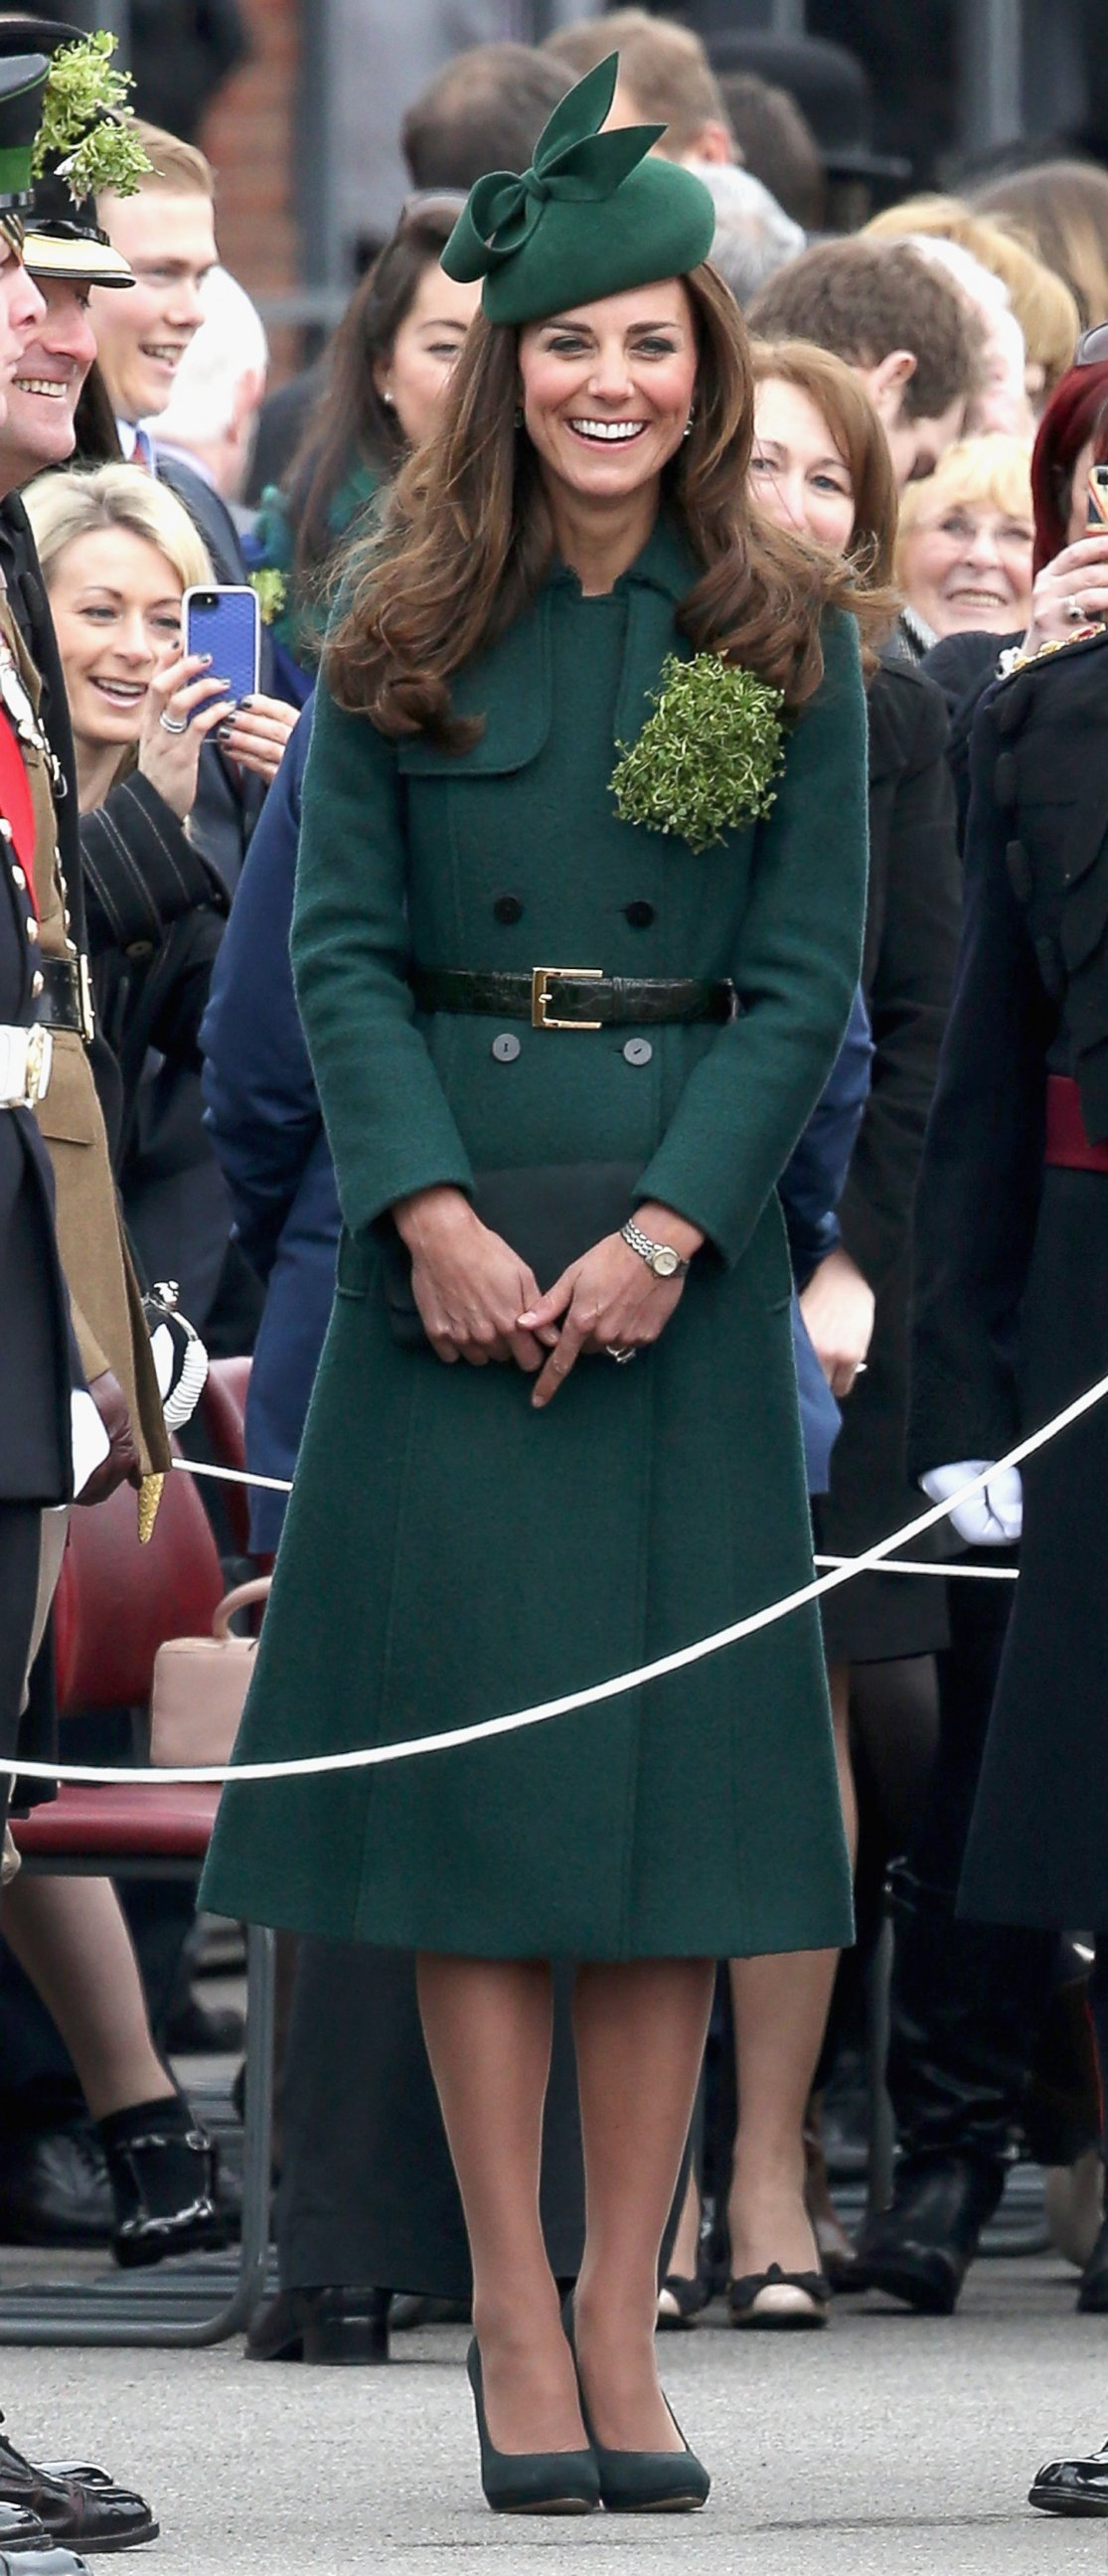 Kate Middleton Goes Green for St. Patrick's Day